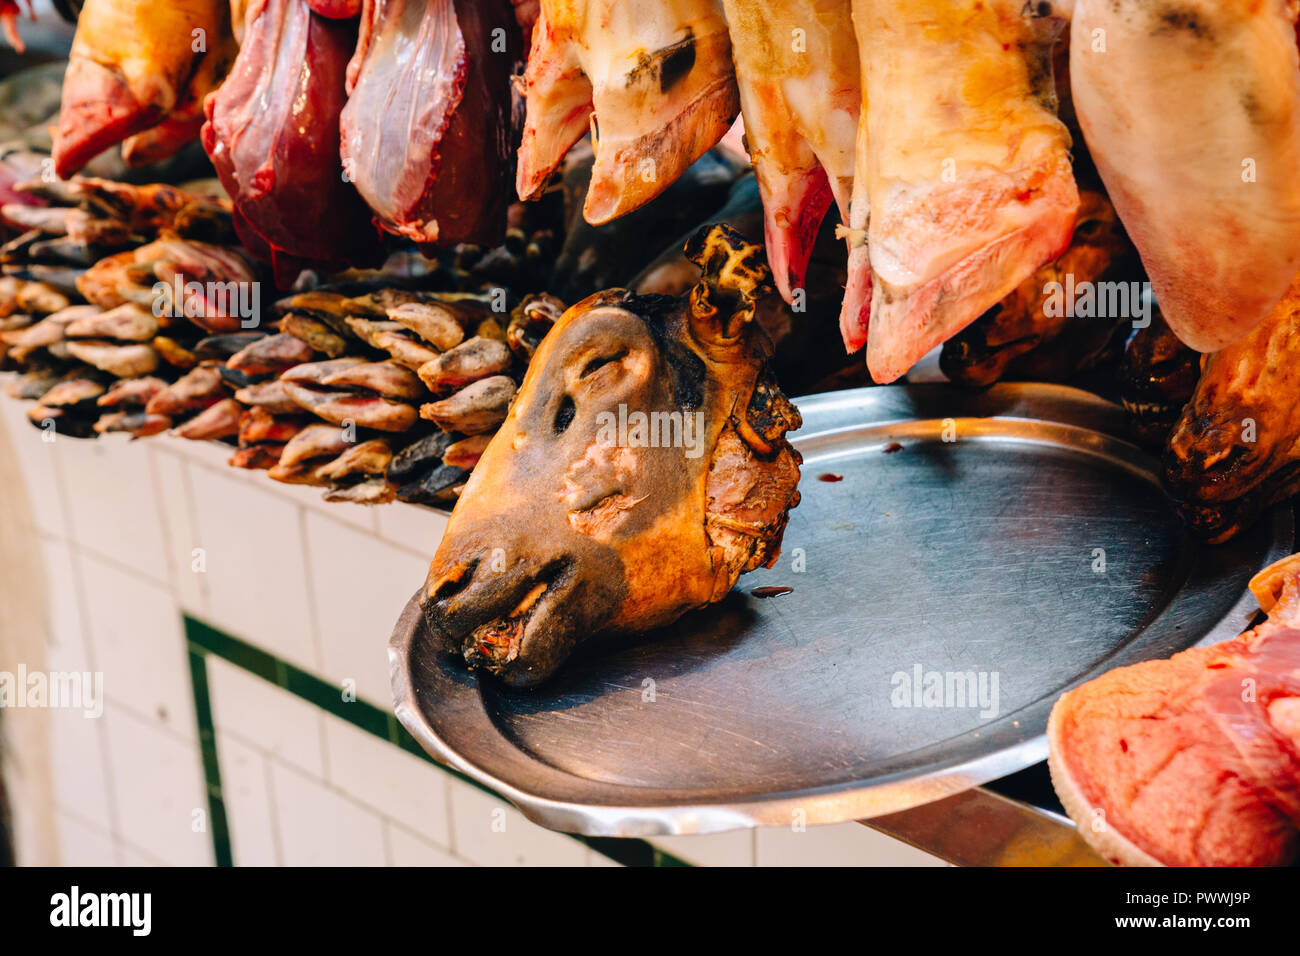 Goat's Head on Platter, Meat and Fish Market, Tangier, Morocco, 2018 - Stock Image